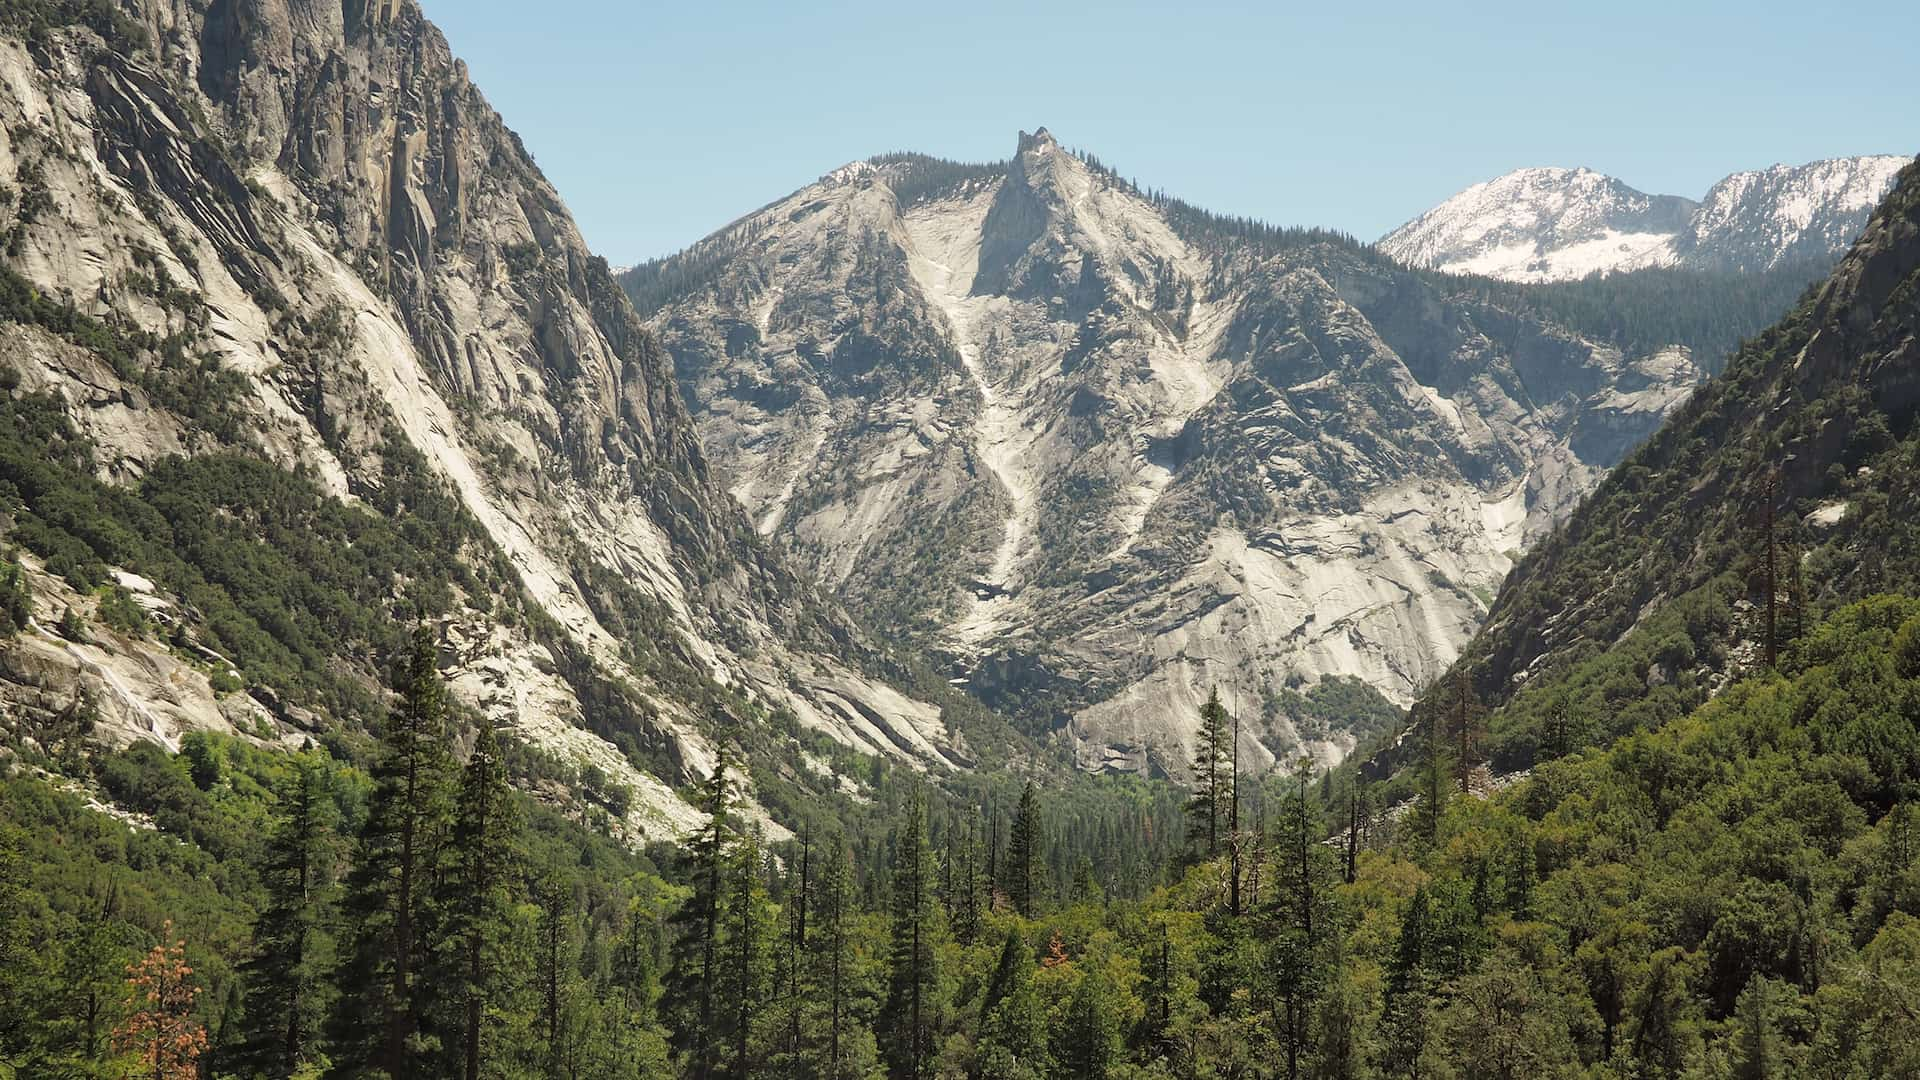 View of The Sphinx from Mist Trail, Kings Canyon, California